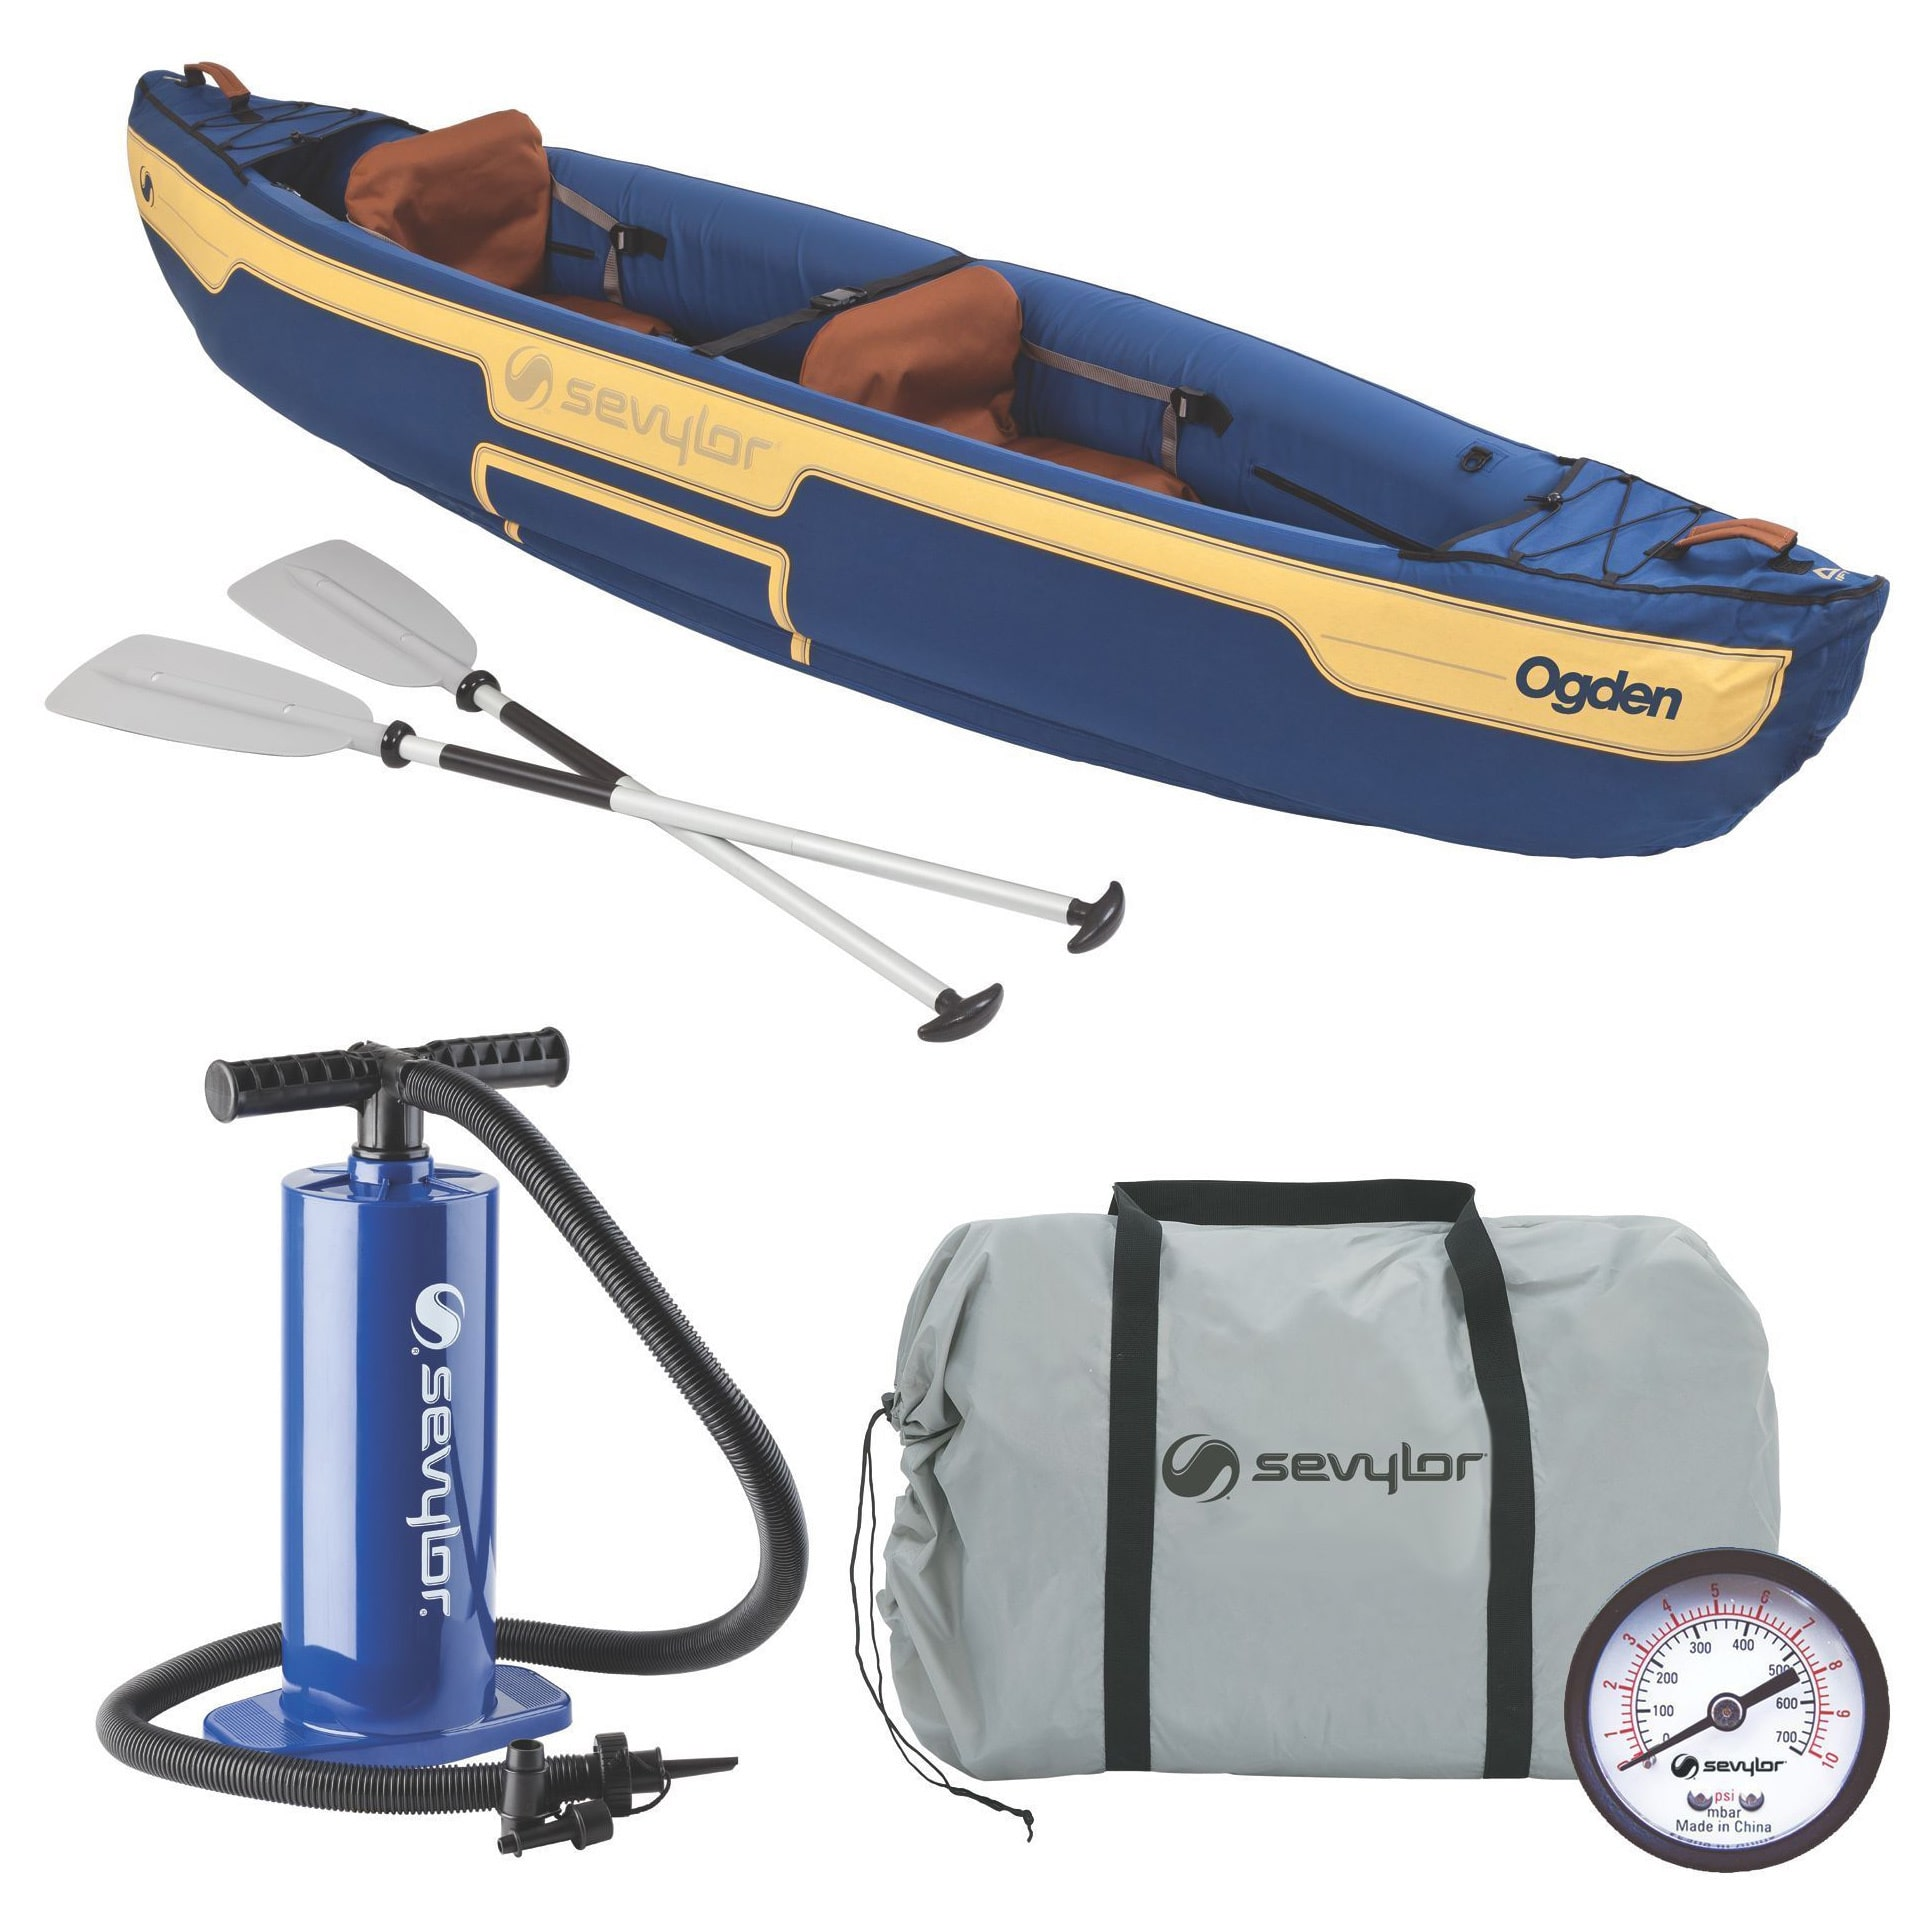 Coleman Ogden 2-Person Canoe Combo by Overstock